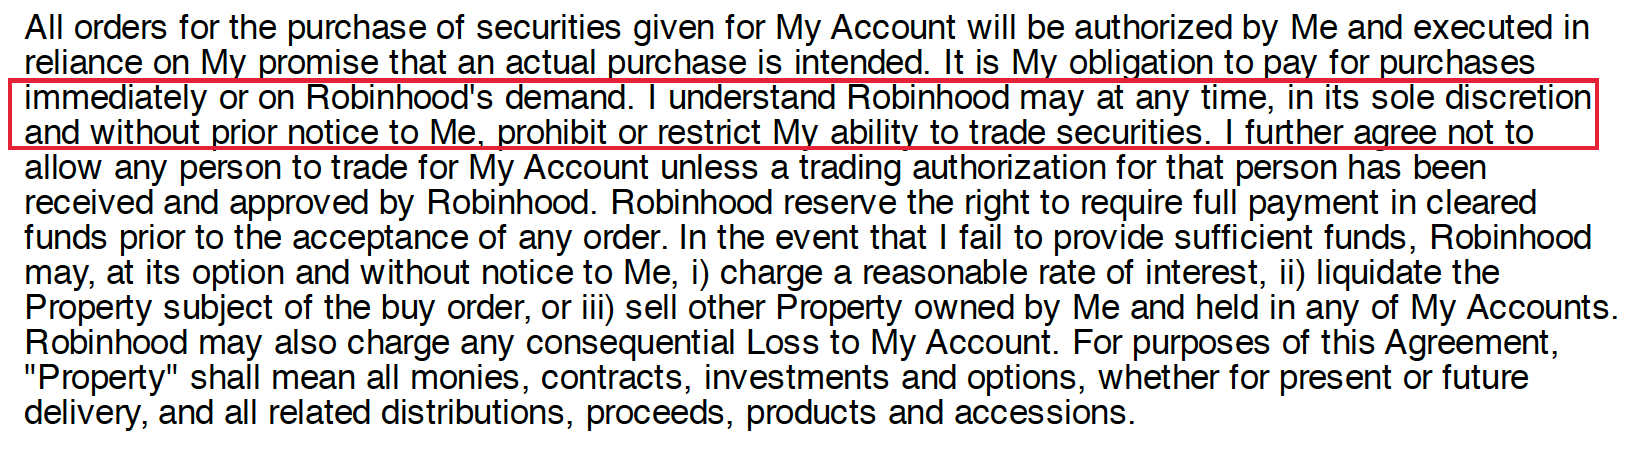 robinhood account agreement